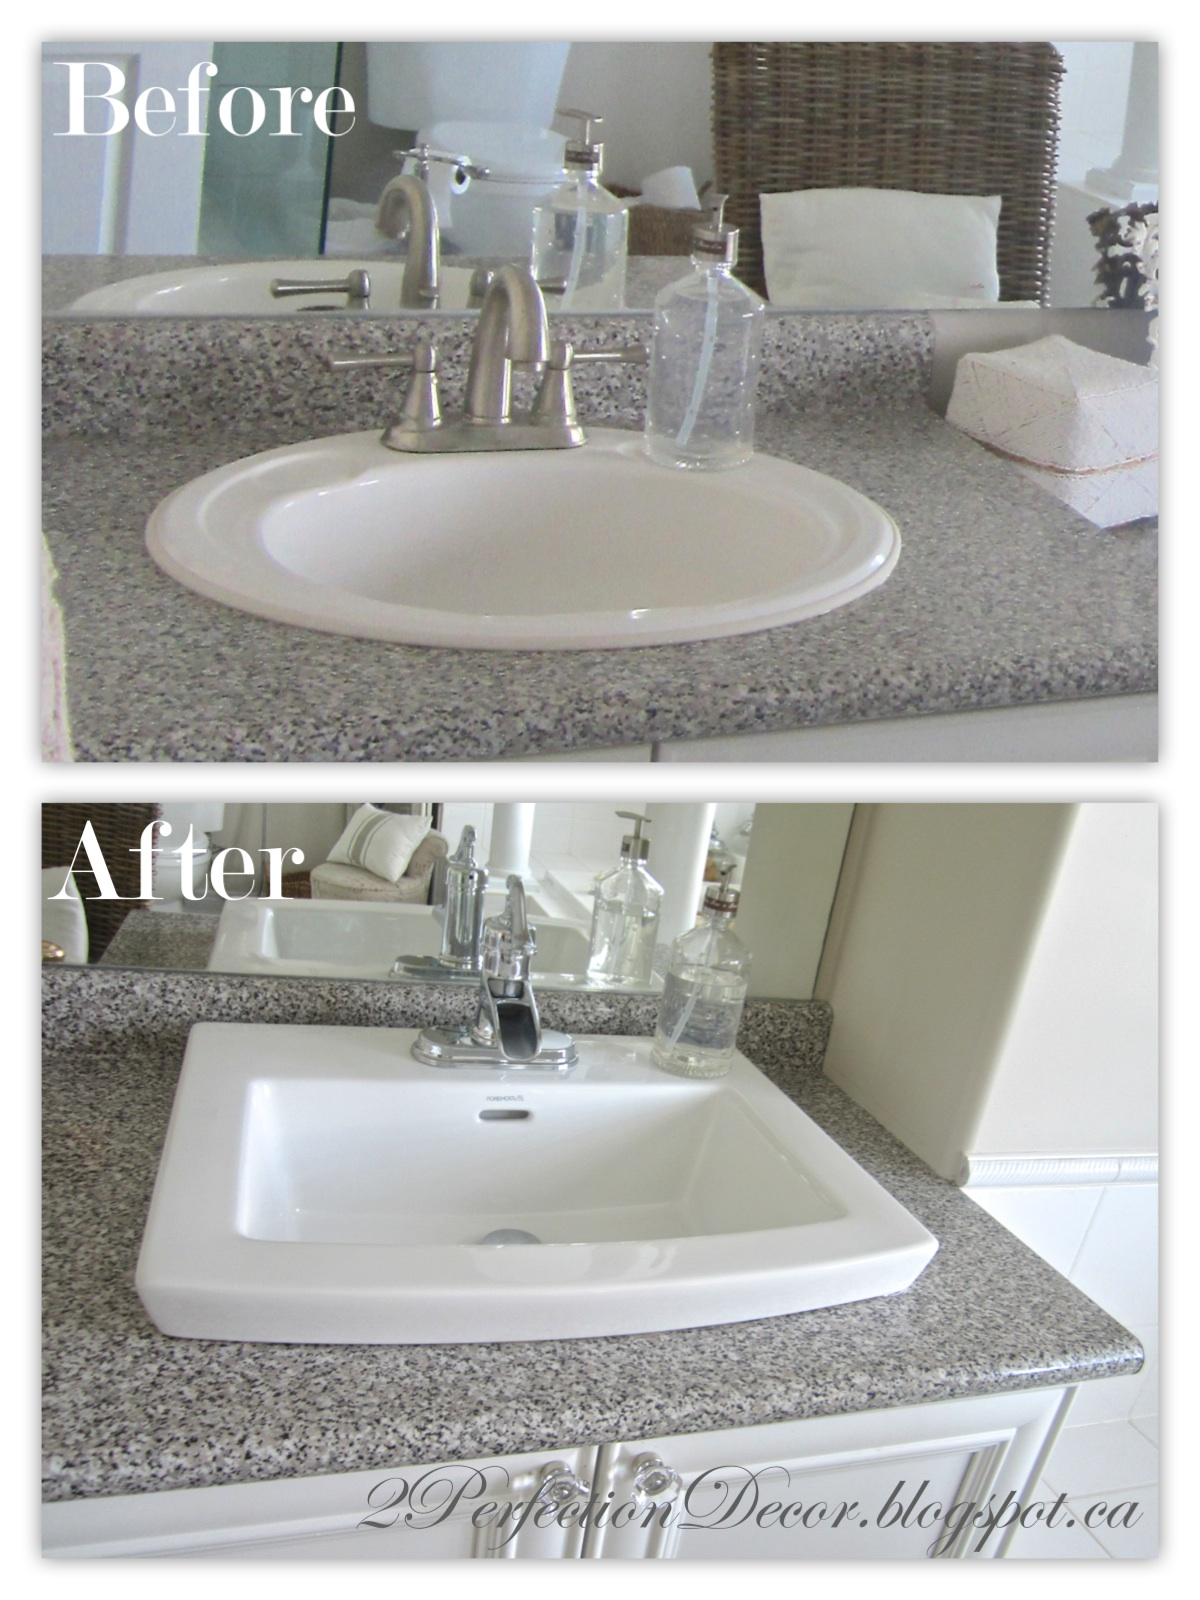 2Perfection Decor: Updating Old Bathroom Sinks.. While Re